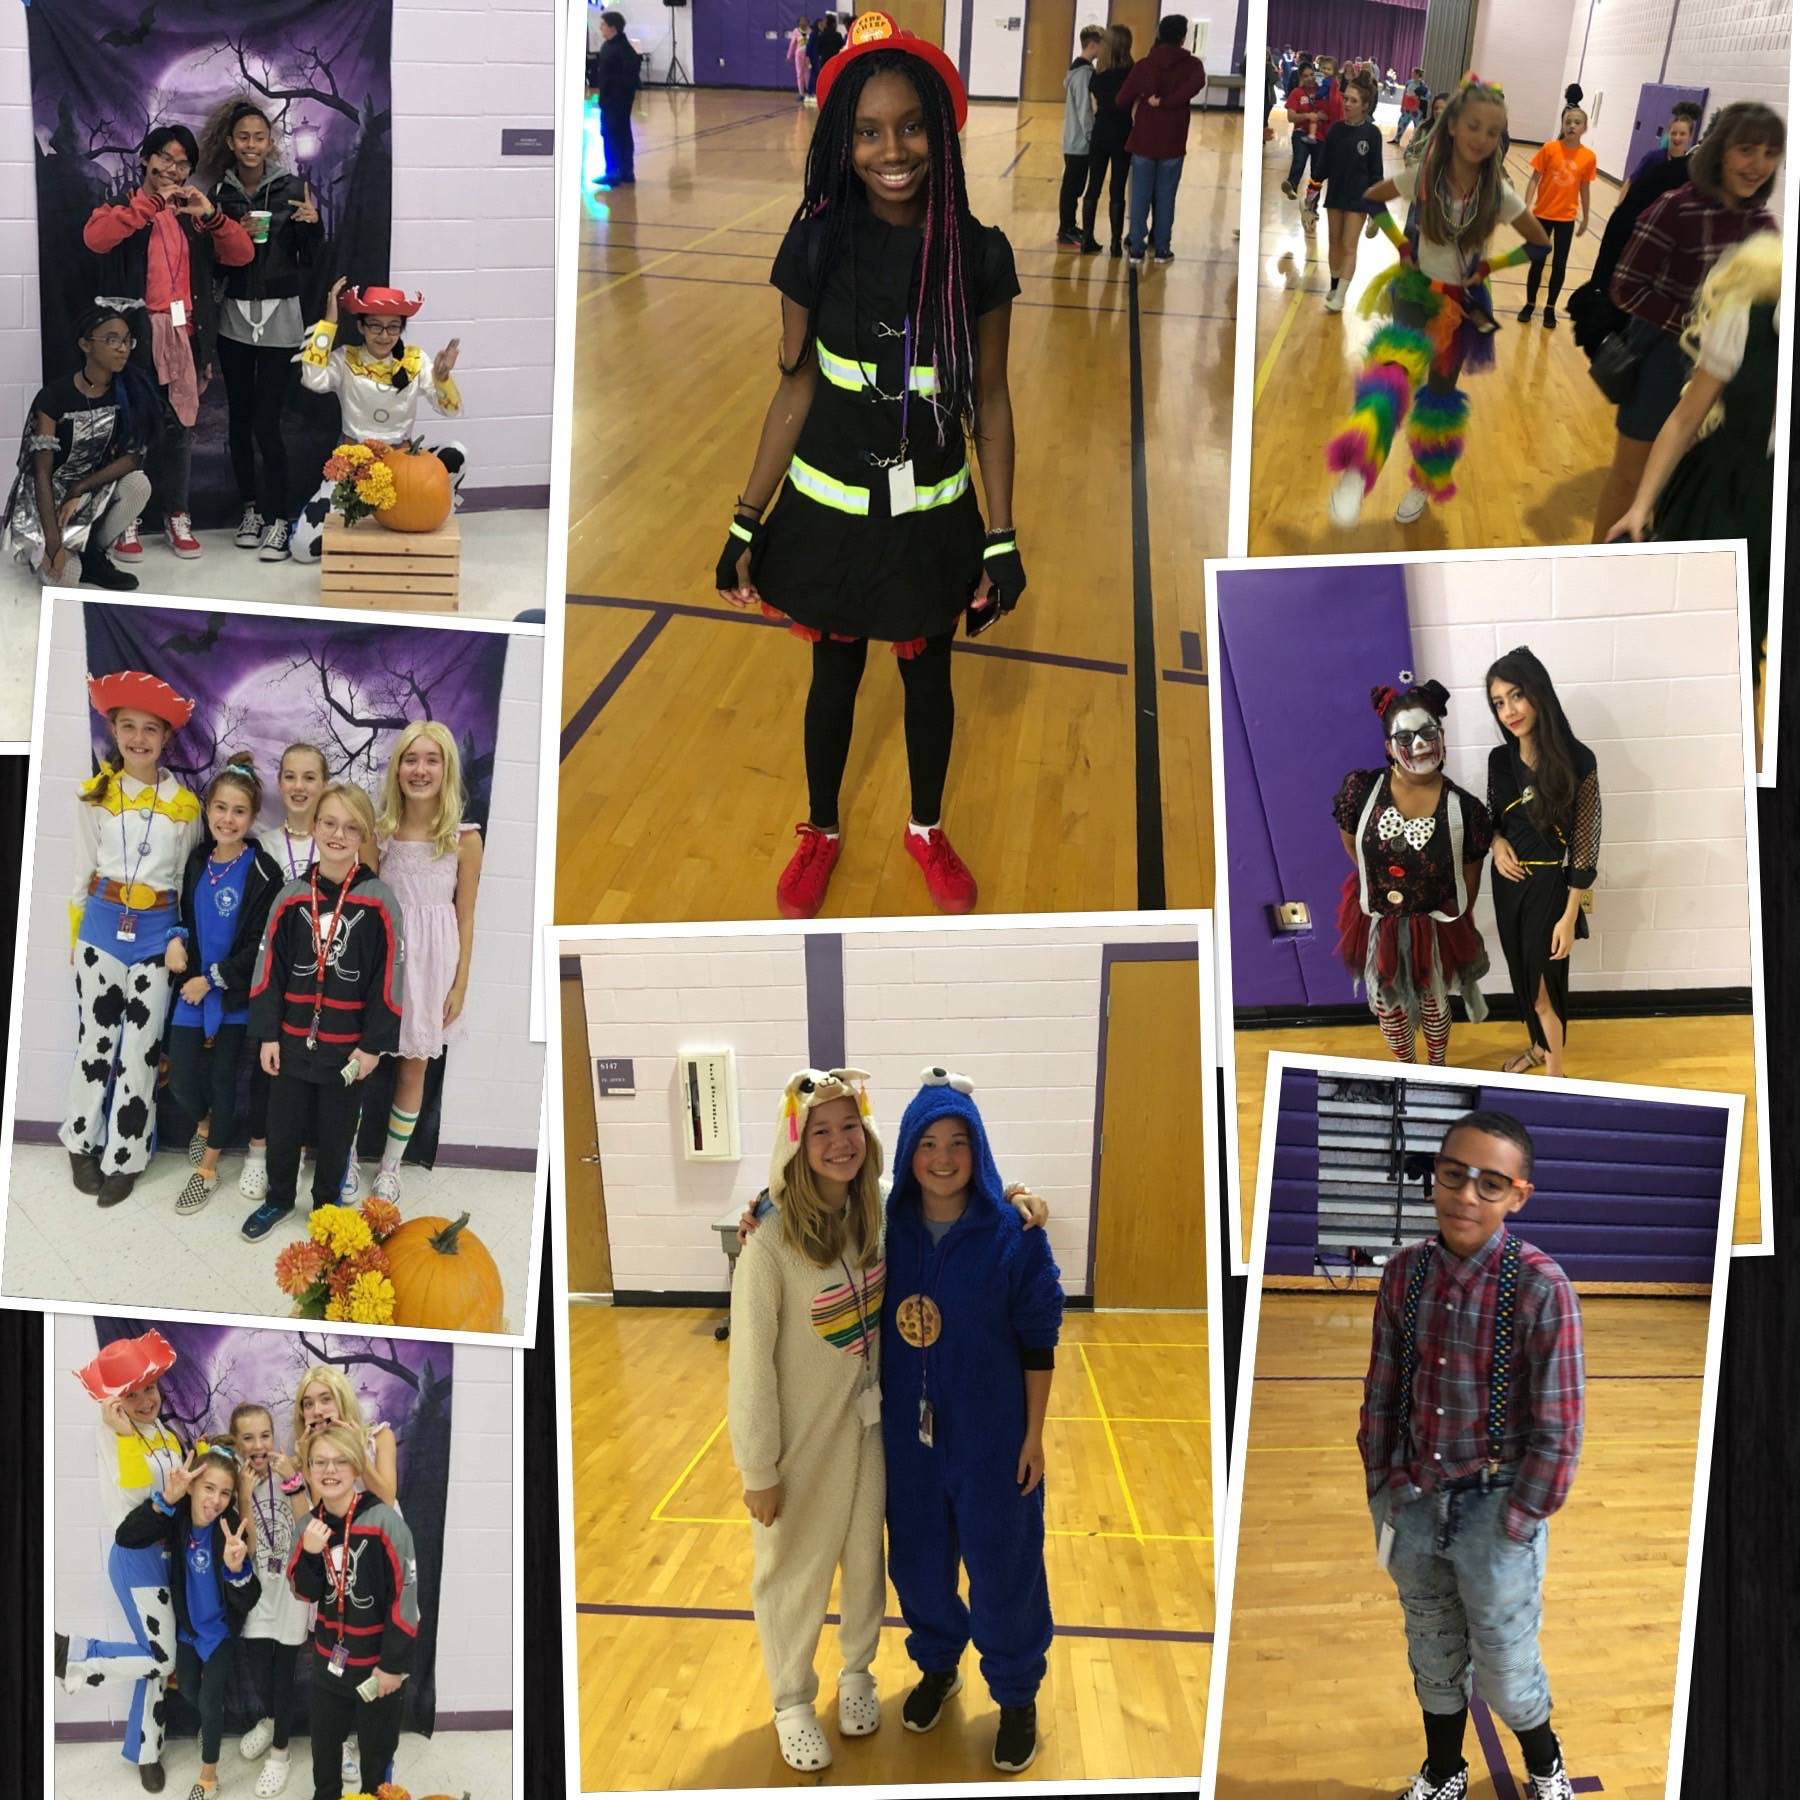 This is a collage of 7th and 8th grade students dressed in costume at the district Halloween Dance.